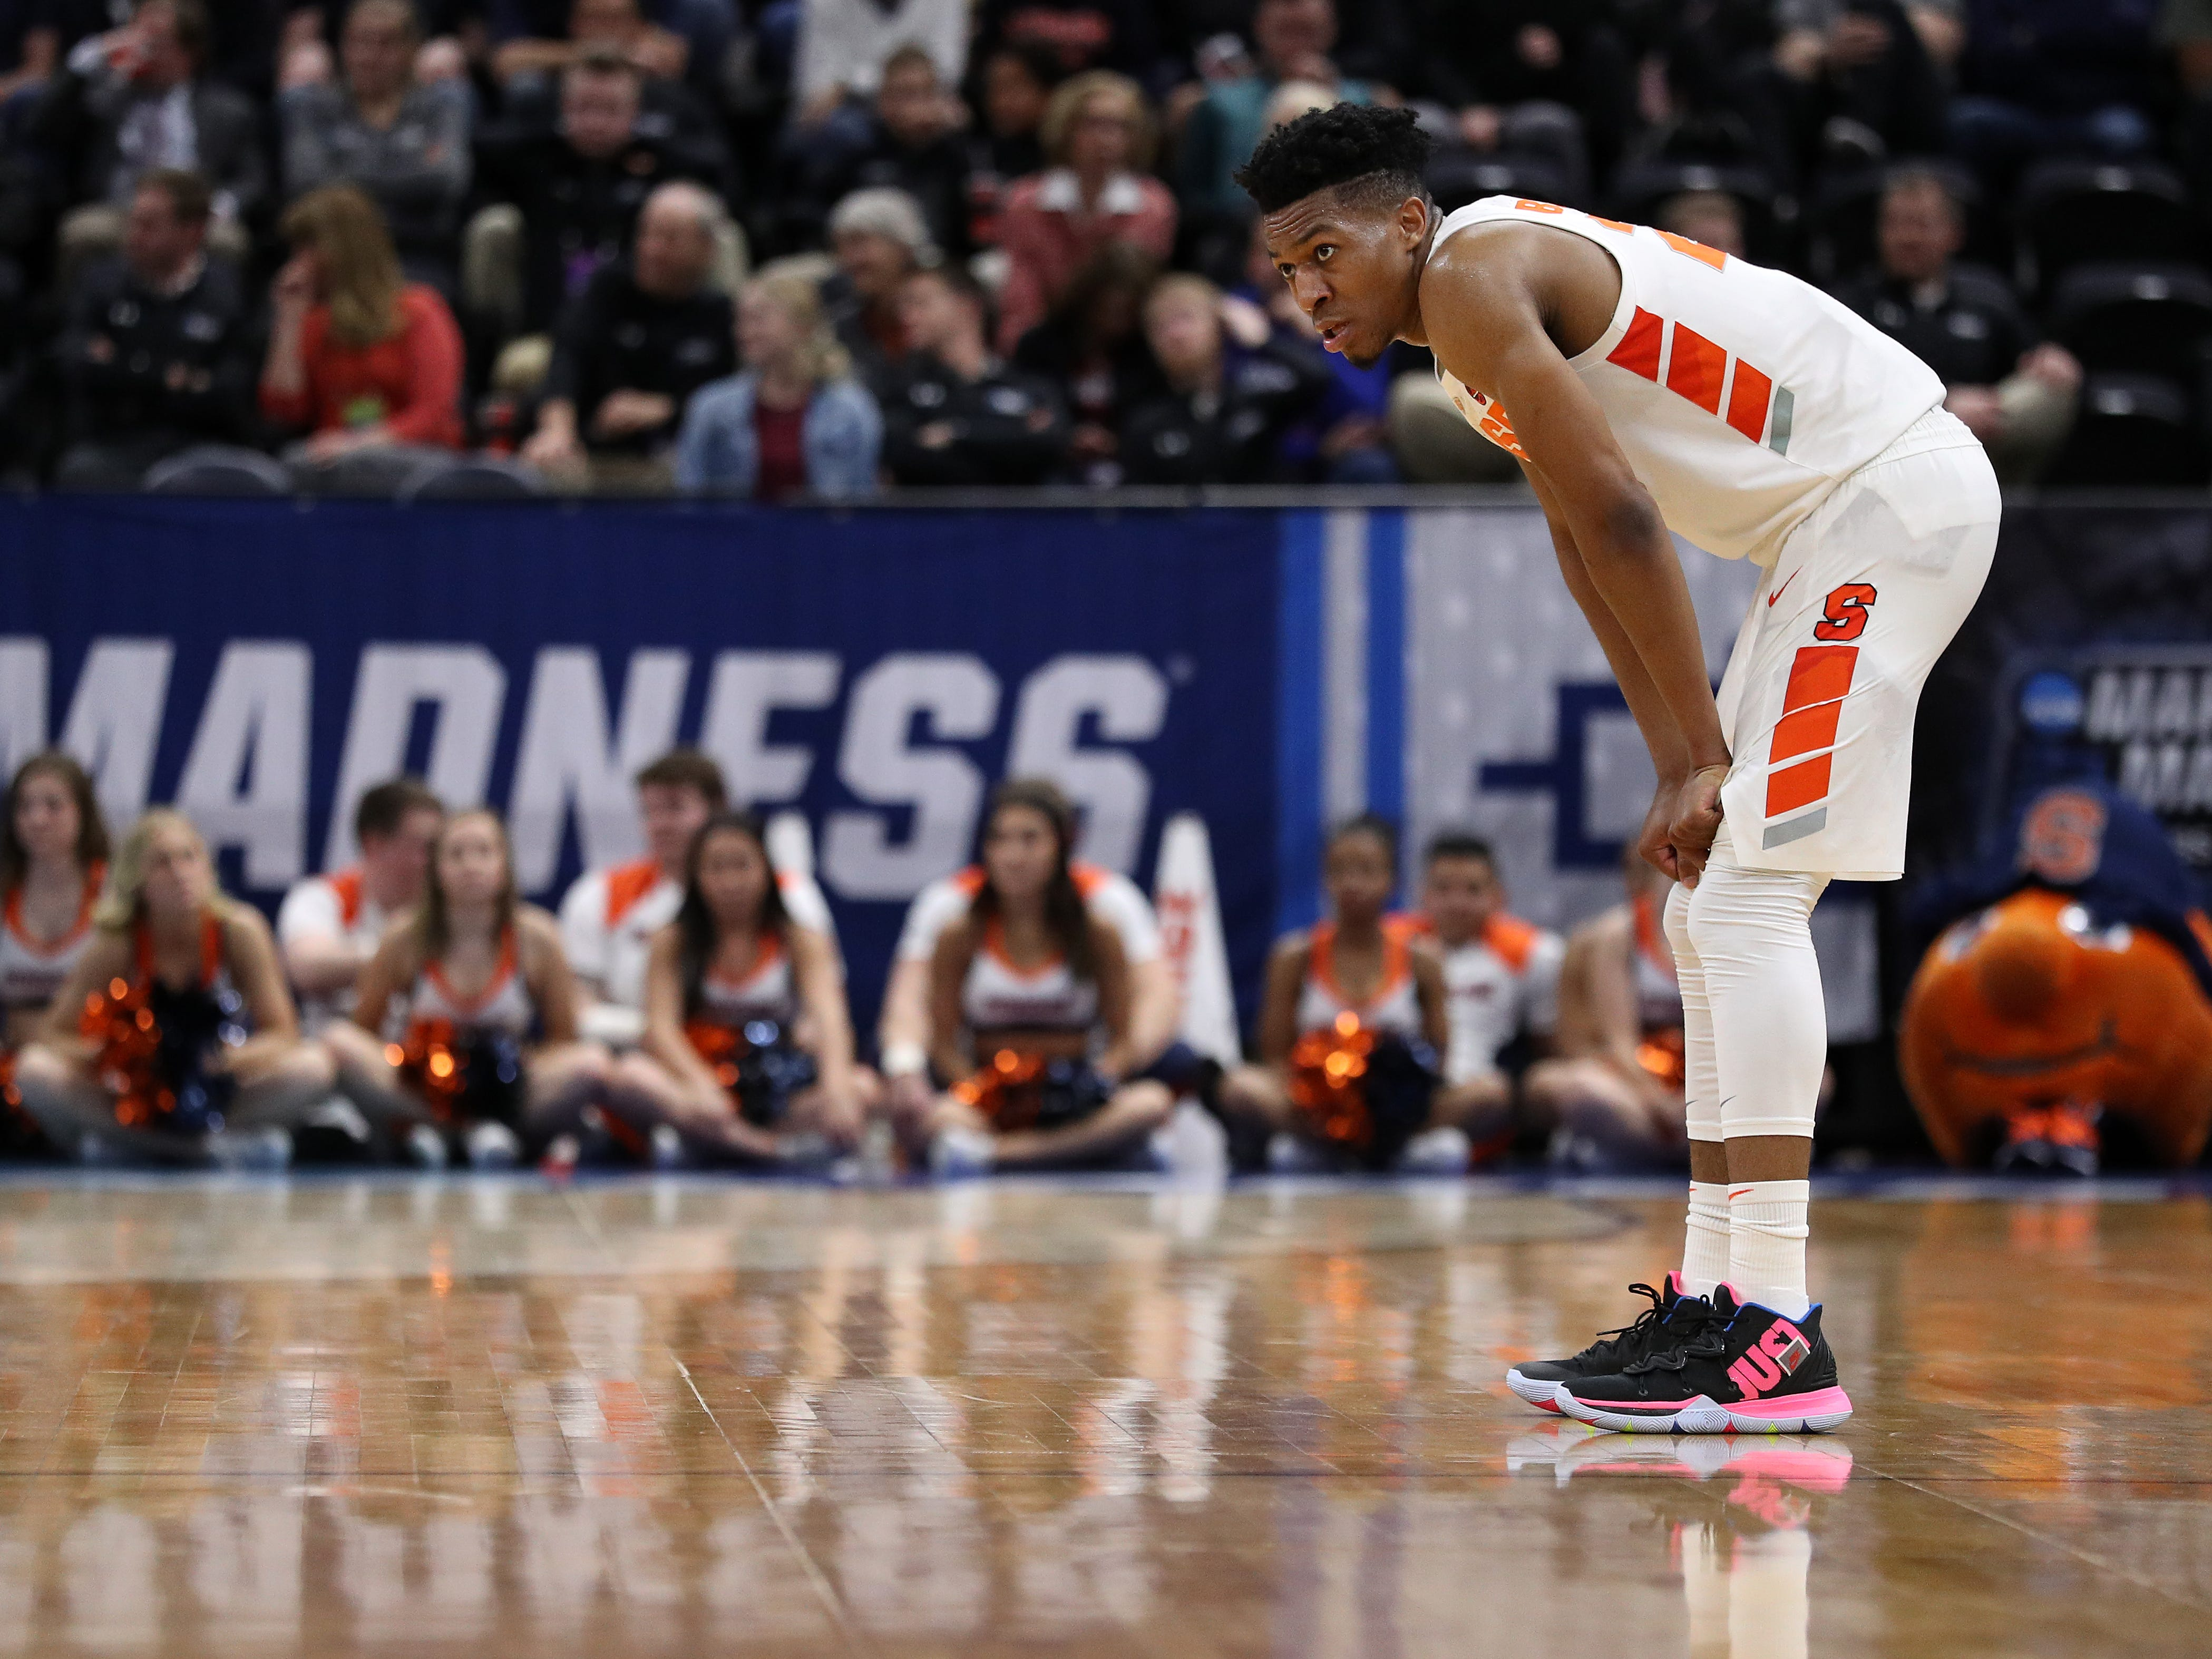 Tyus Battle of the Syracuse Orange reacts against the Baylor Bears during the second half 0f a 78-69 loss in the first round of the 2019 NCAA Men's Basketball Tournament at Vivint Smart Home Arena on March 21, 2019 in Salt Lake City, Utah.